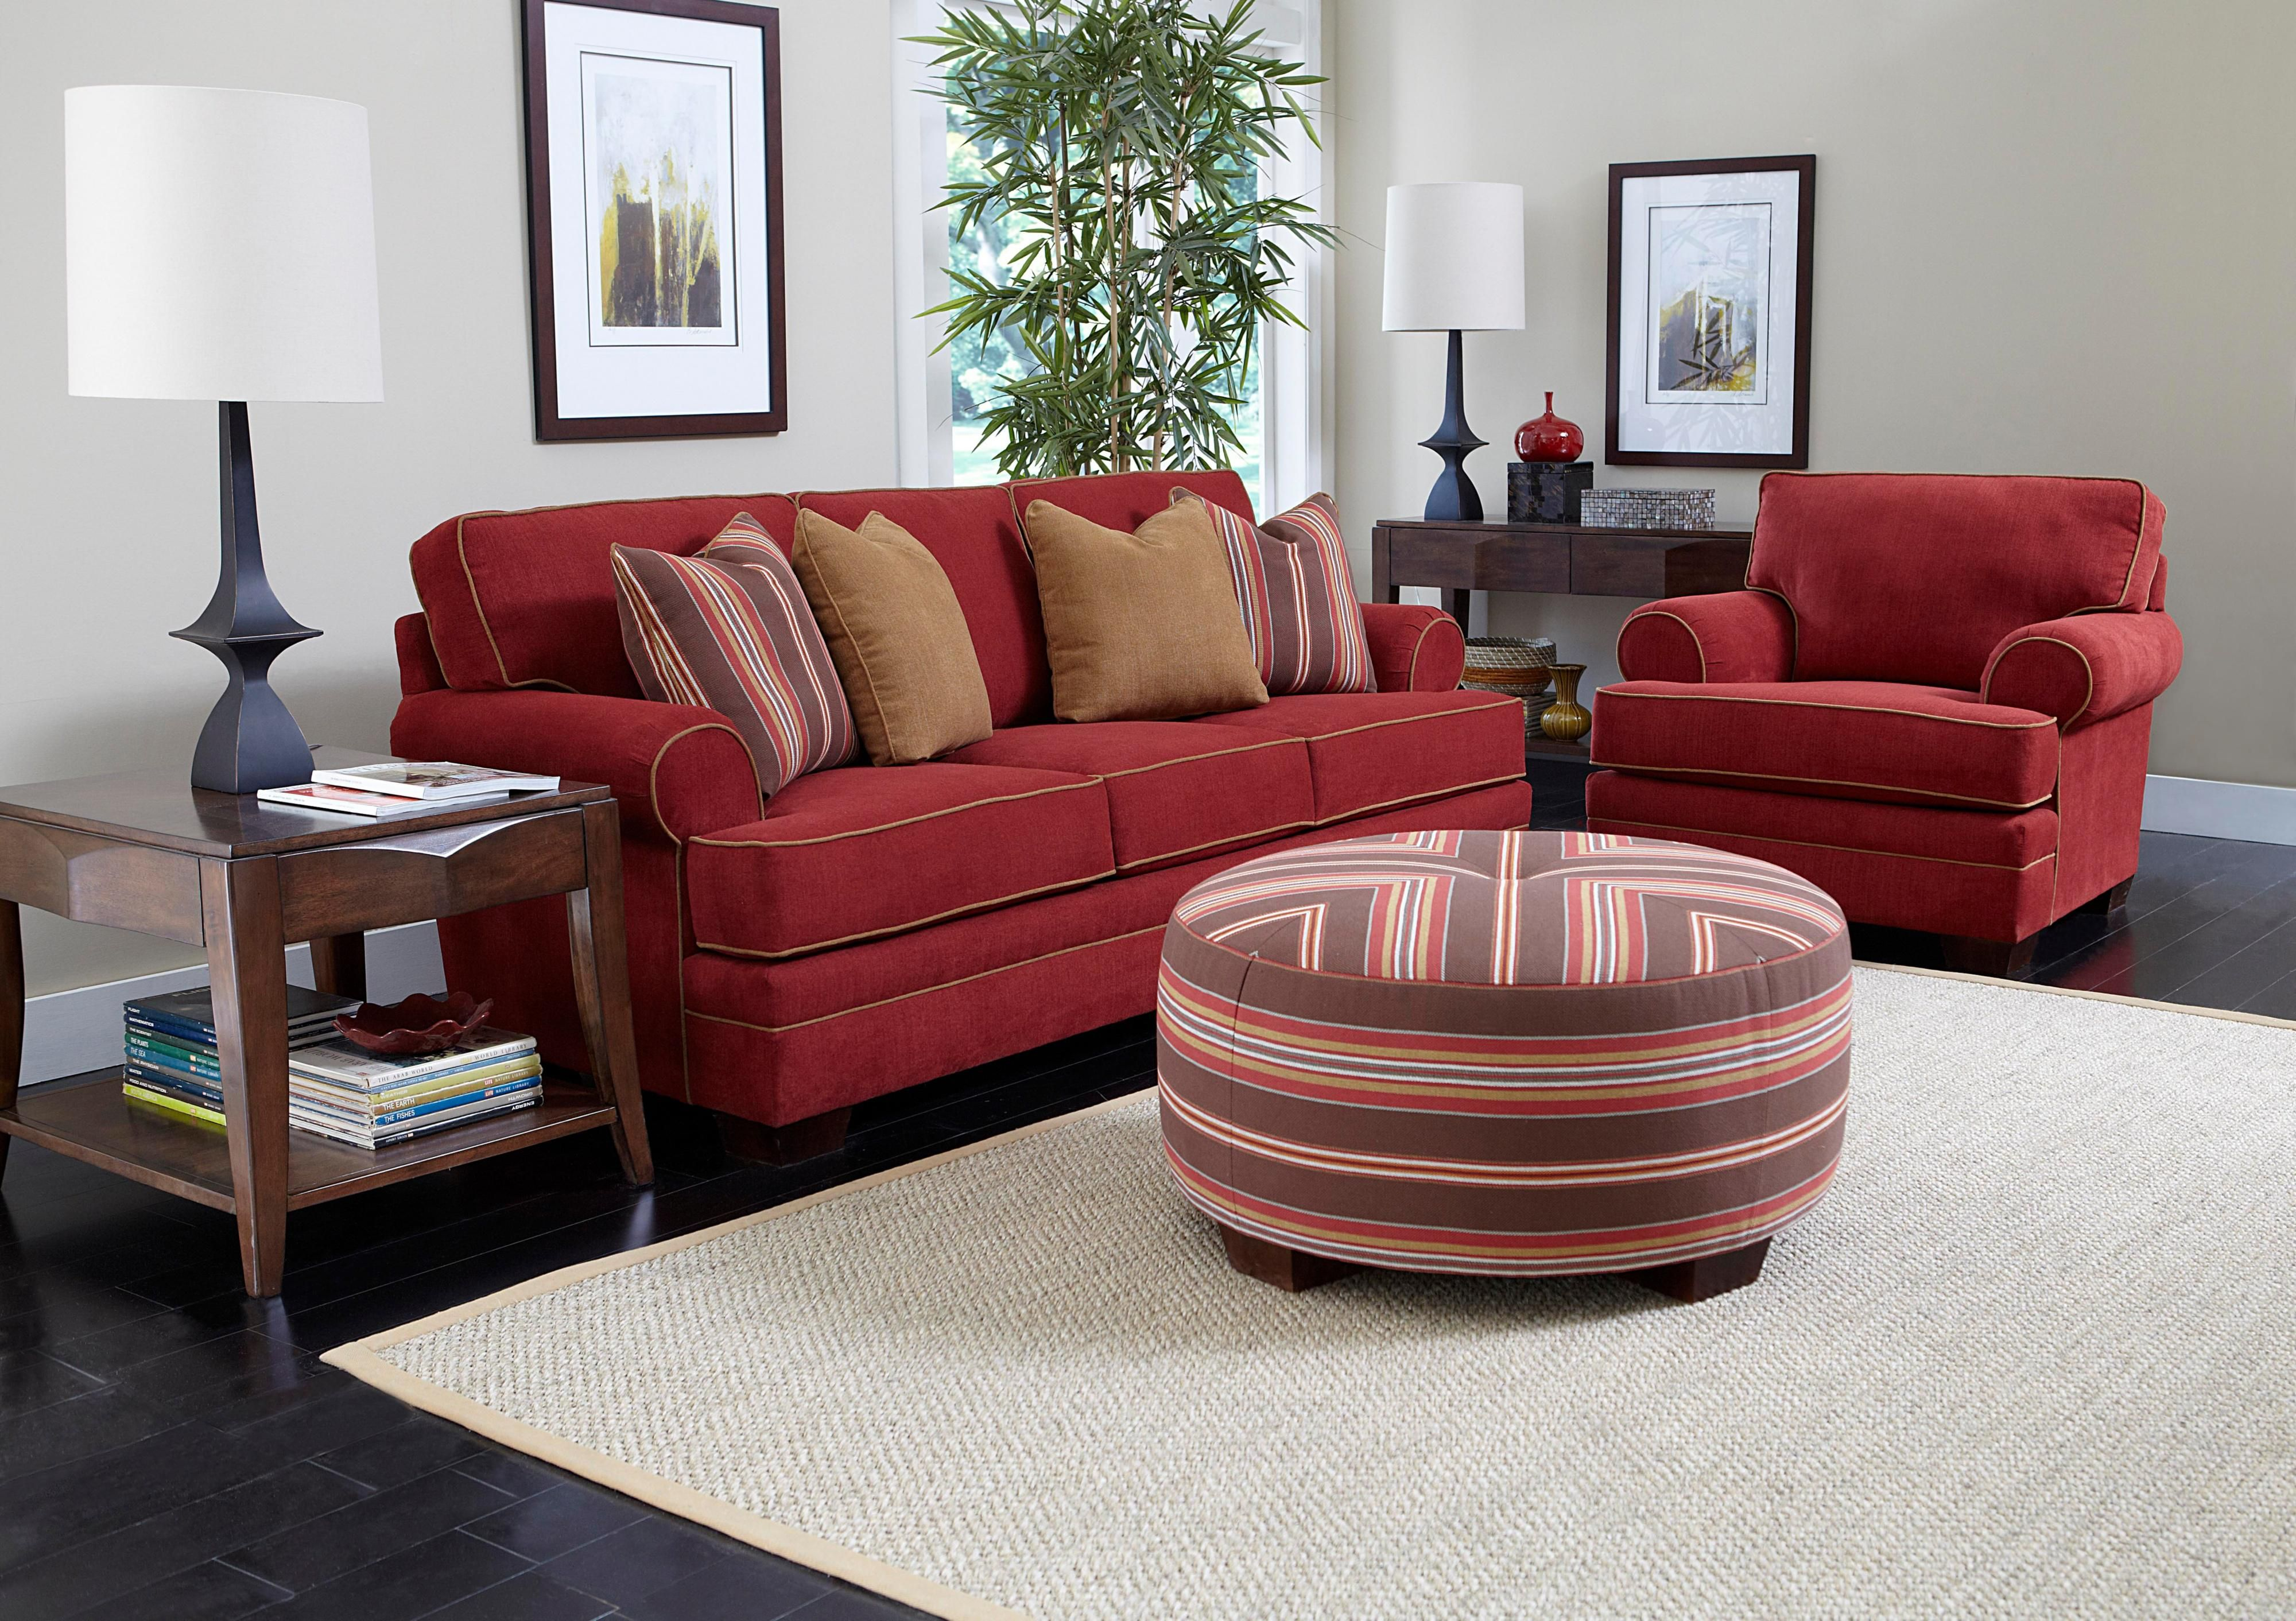 Broyhill sofa and chair Broyhill furniture, Furniture